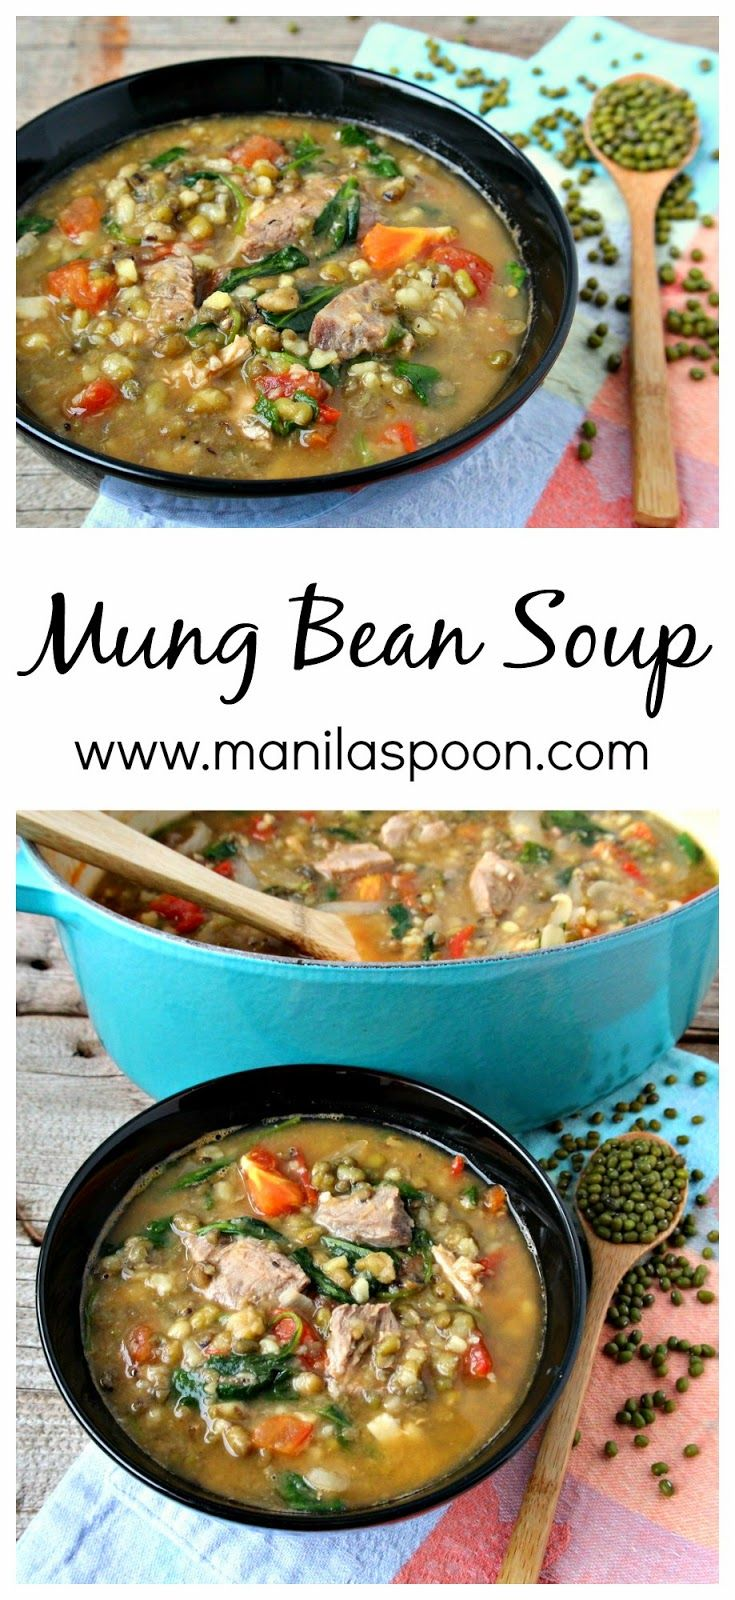 With beans, spinach, tomatoes and meat this hearty and healthy soup is filling and delicious! #spinach #mung #bean #soup